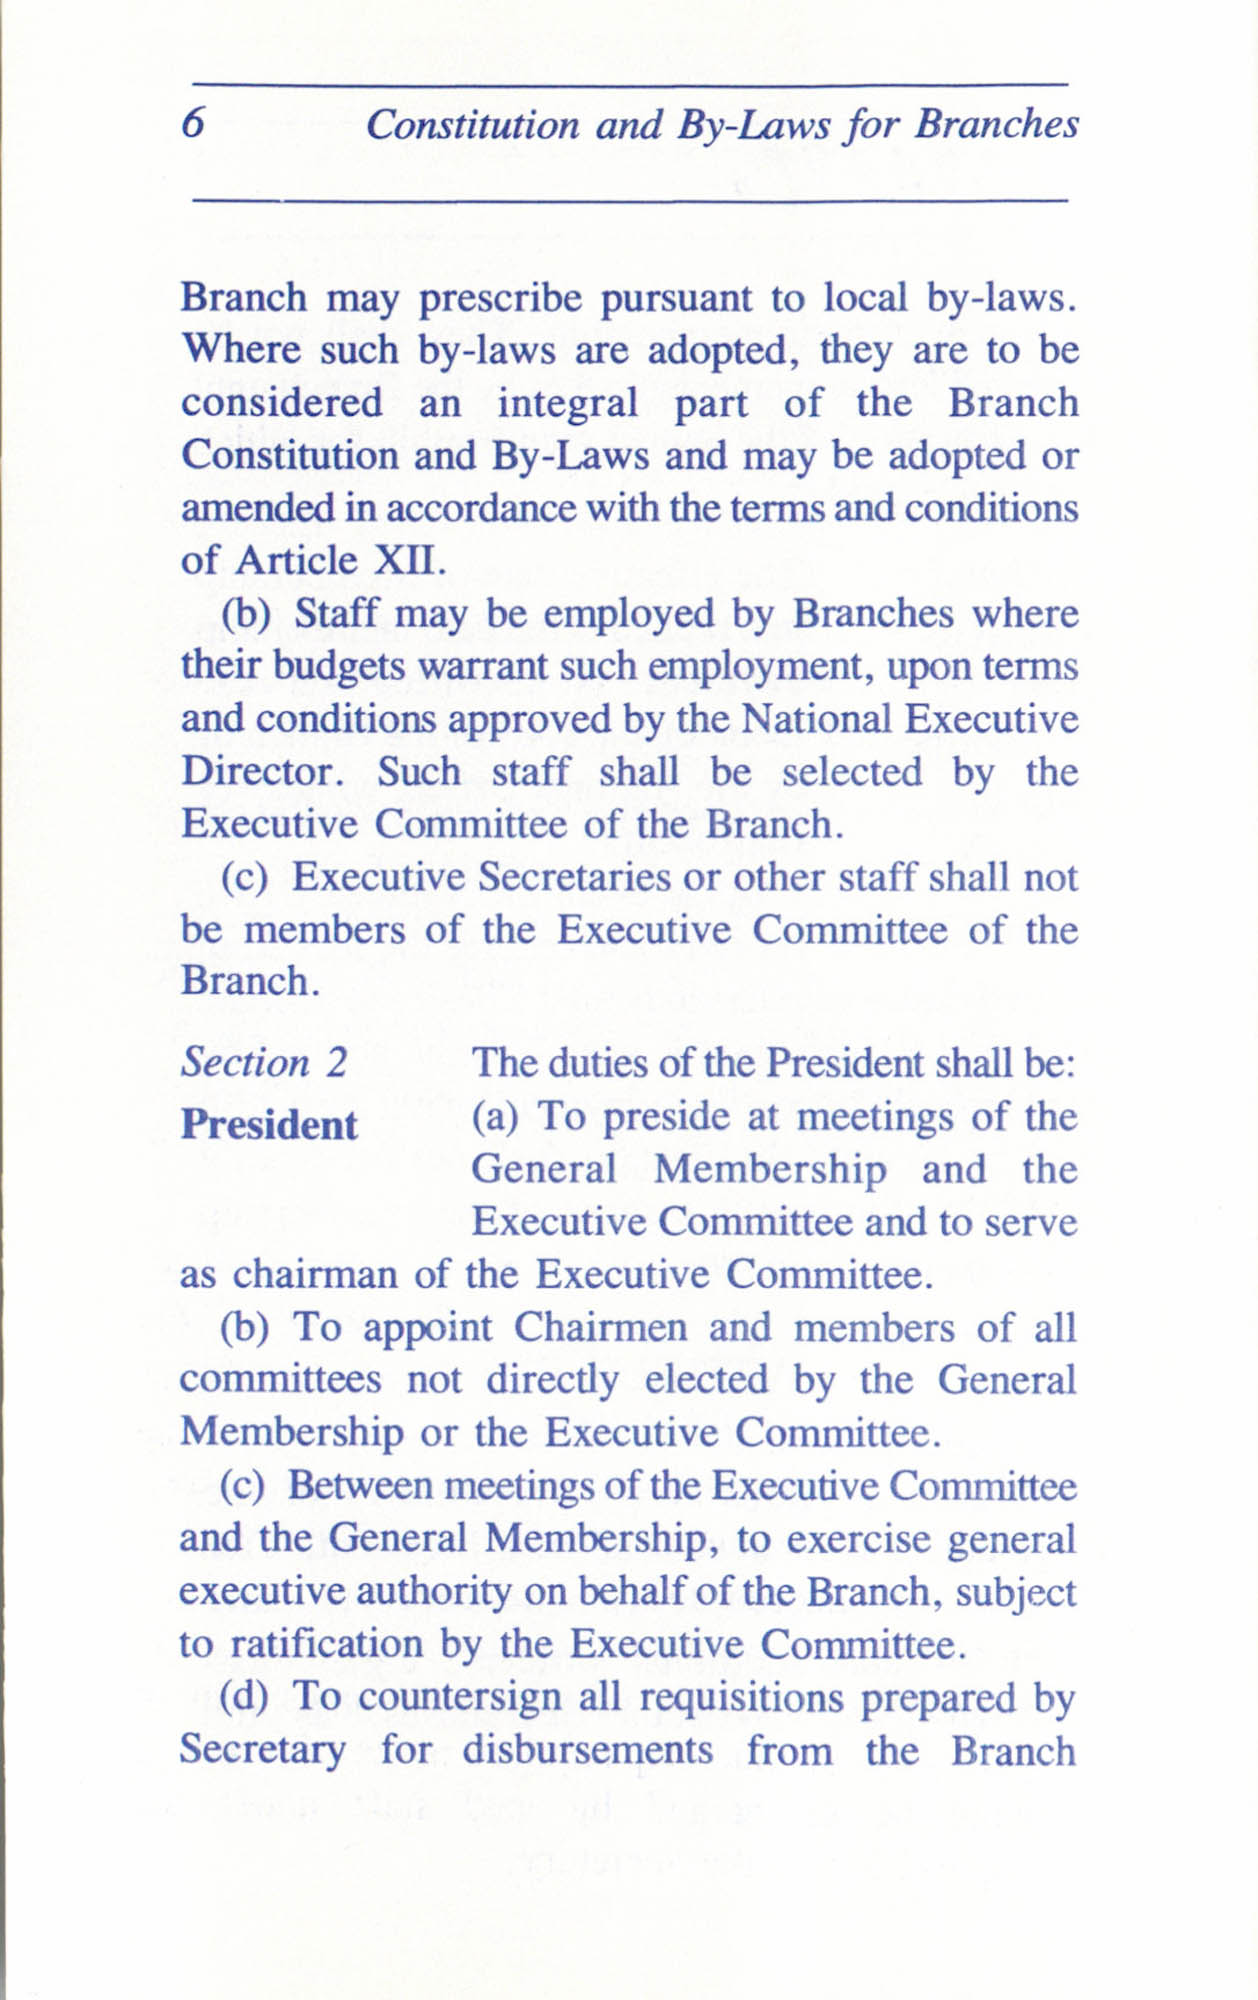 Constitution and By-Laws for Branches of the NAACP, June 1993, Page 6